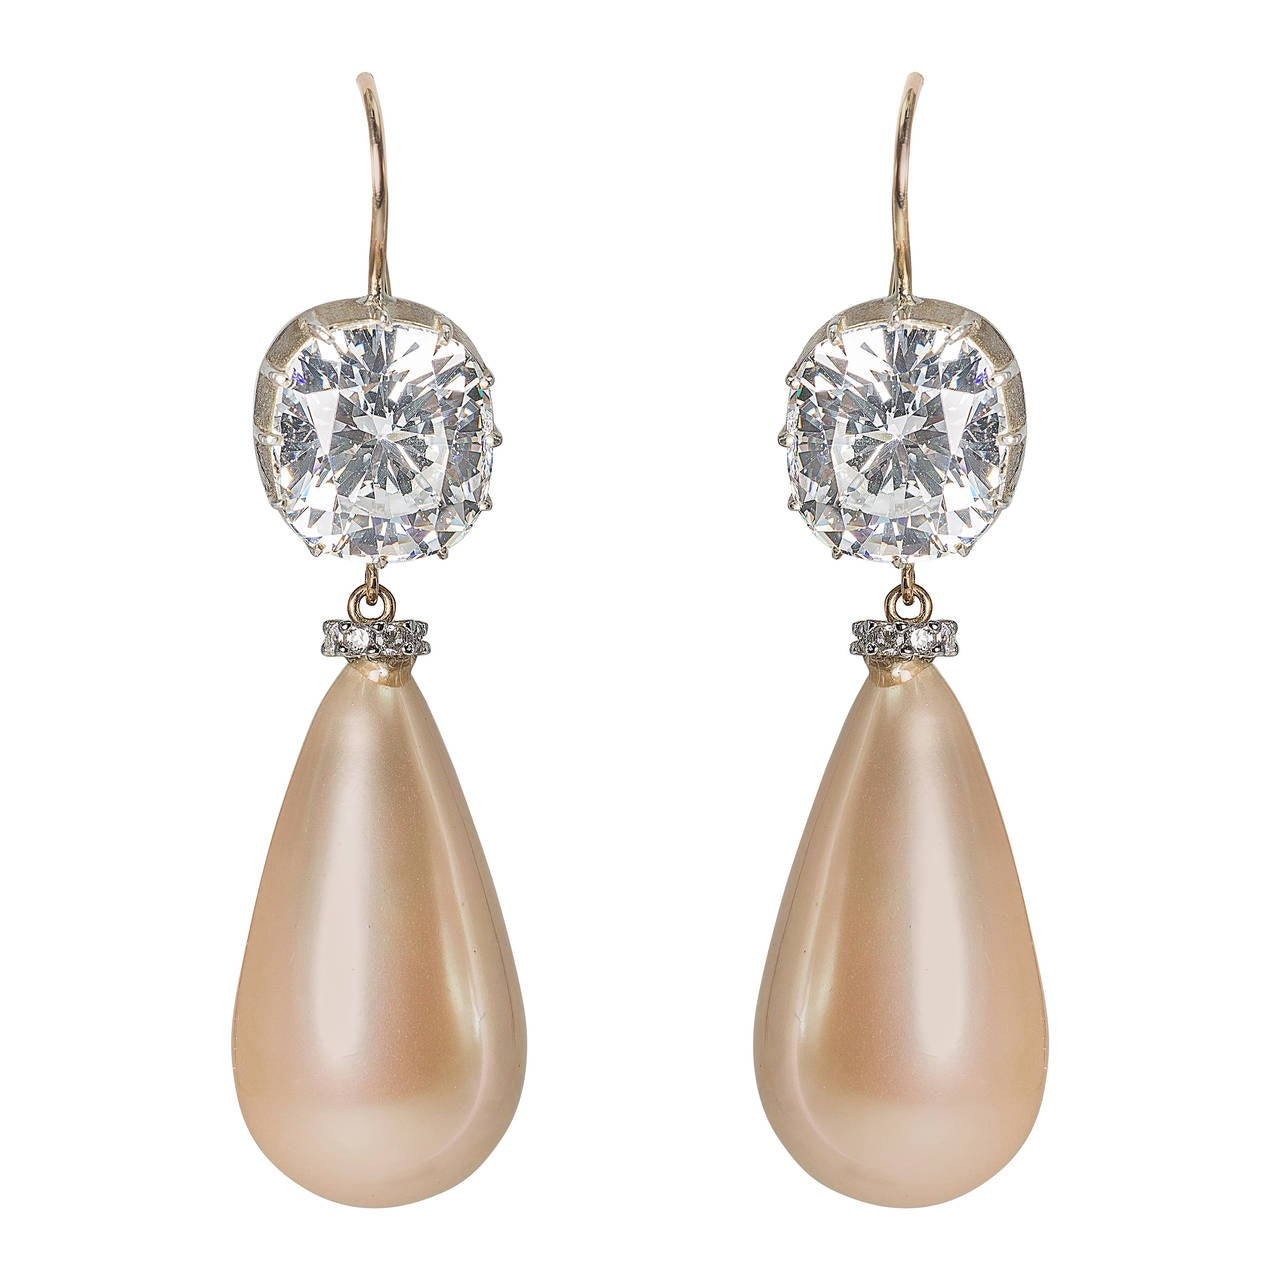 The Faux Magnificent Empress Eugénie Pearl Earrings For Sale